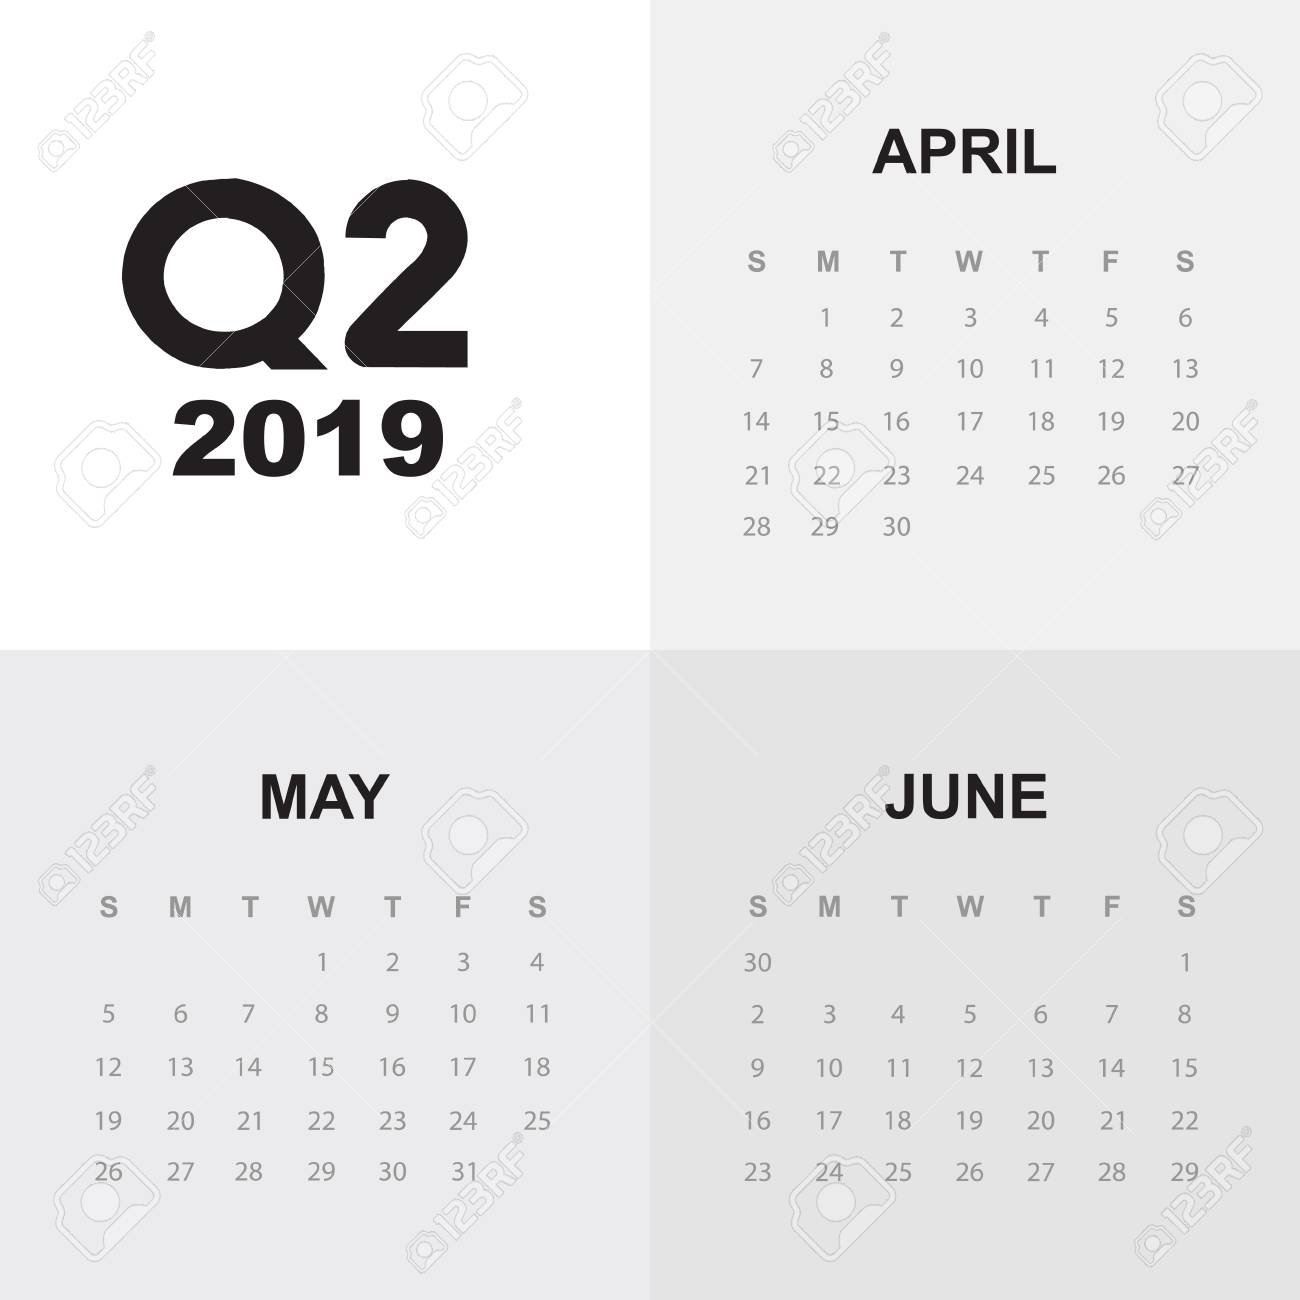 Second Quarter Of Calendar 2019 Royalty Free Cliparts, Vectors, And 2/2019 Calendar